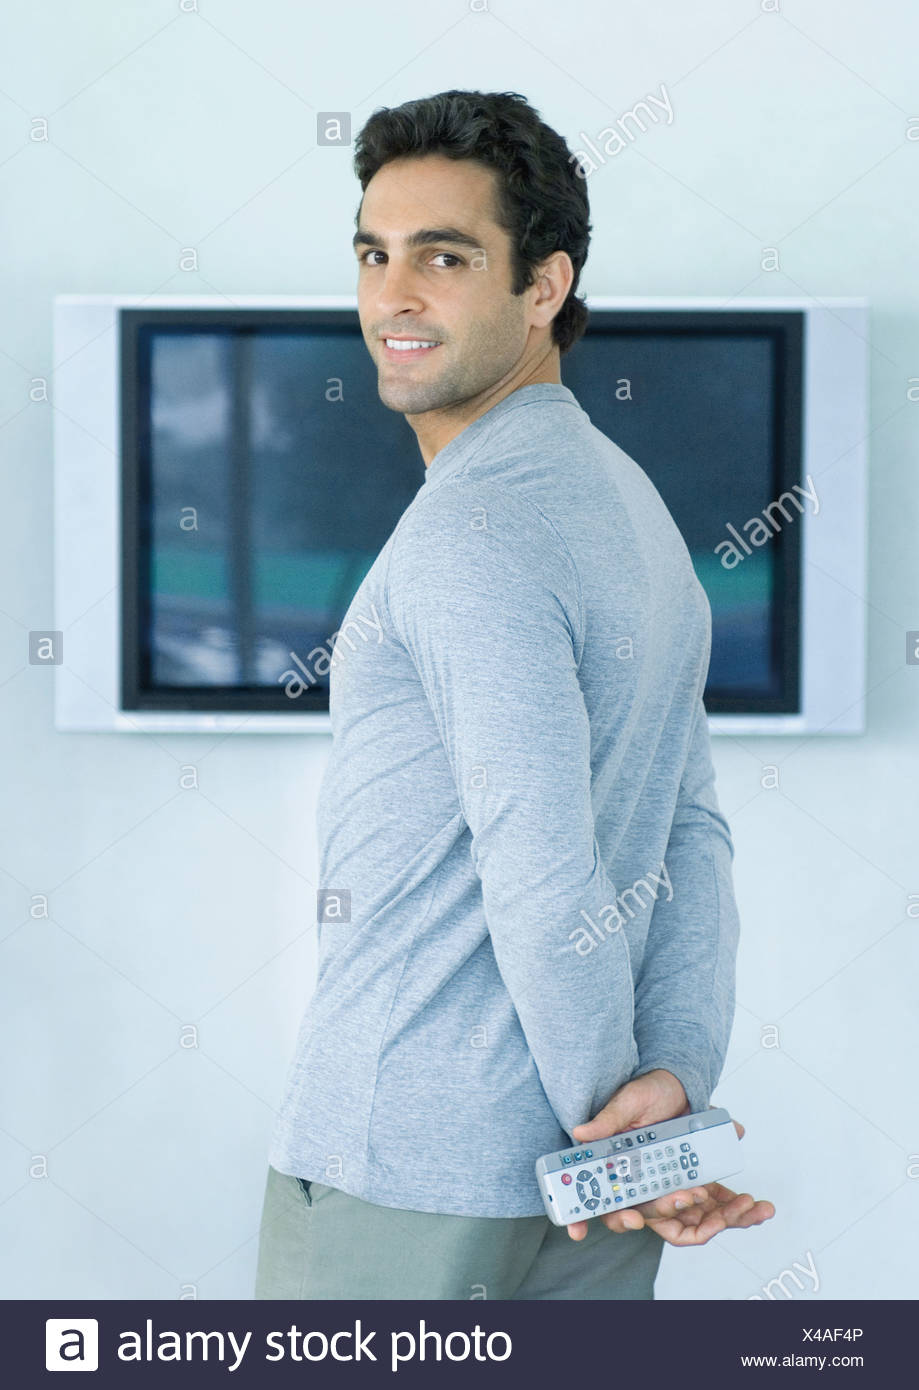 Man standing in front of widescreen TV, holding two remote controls, smiling over shoulder at camera - Stock Image